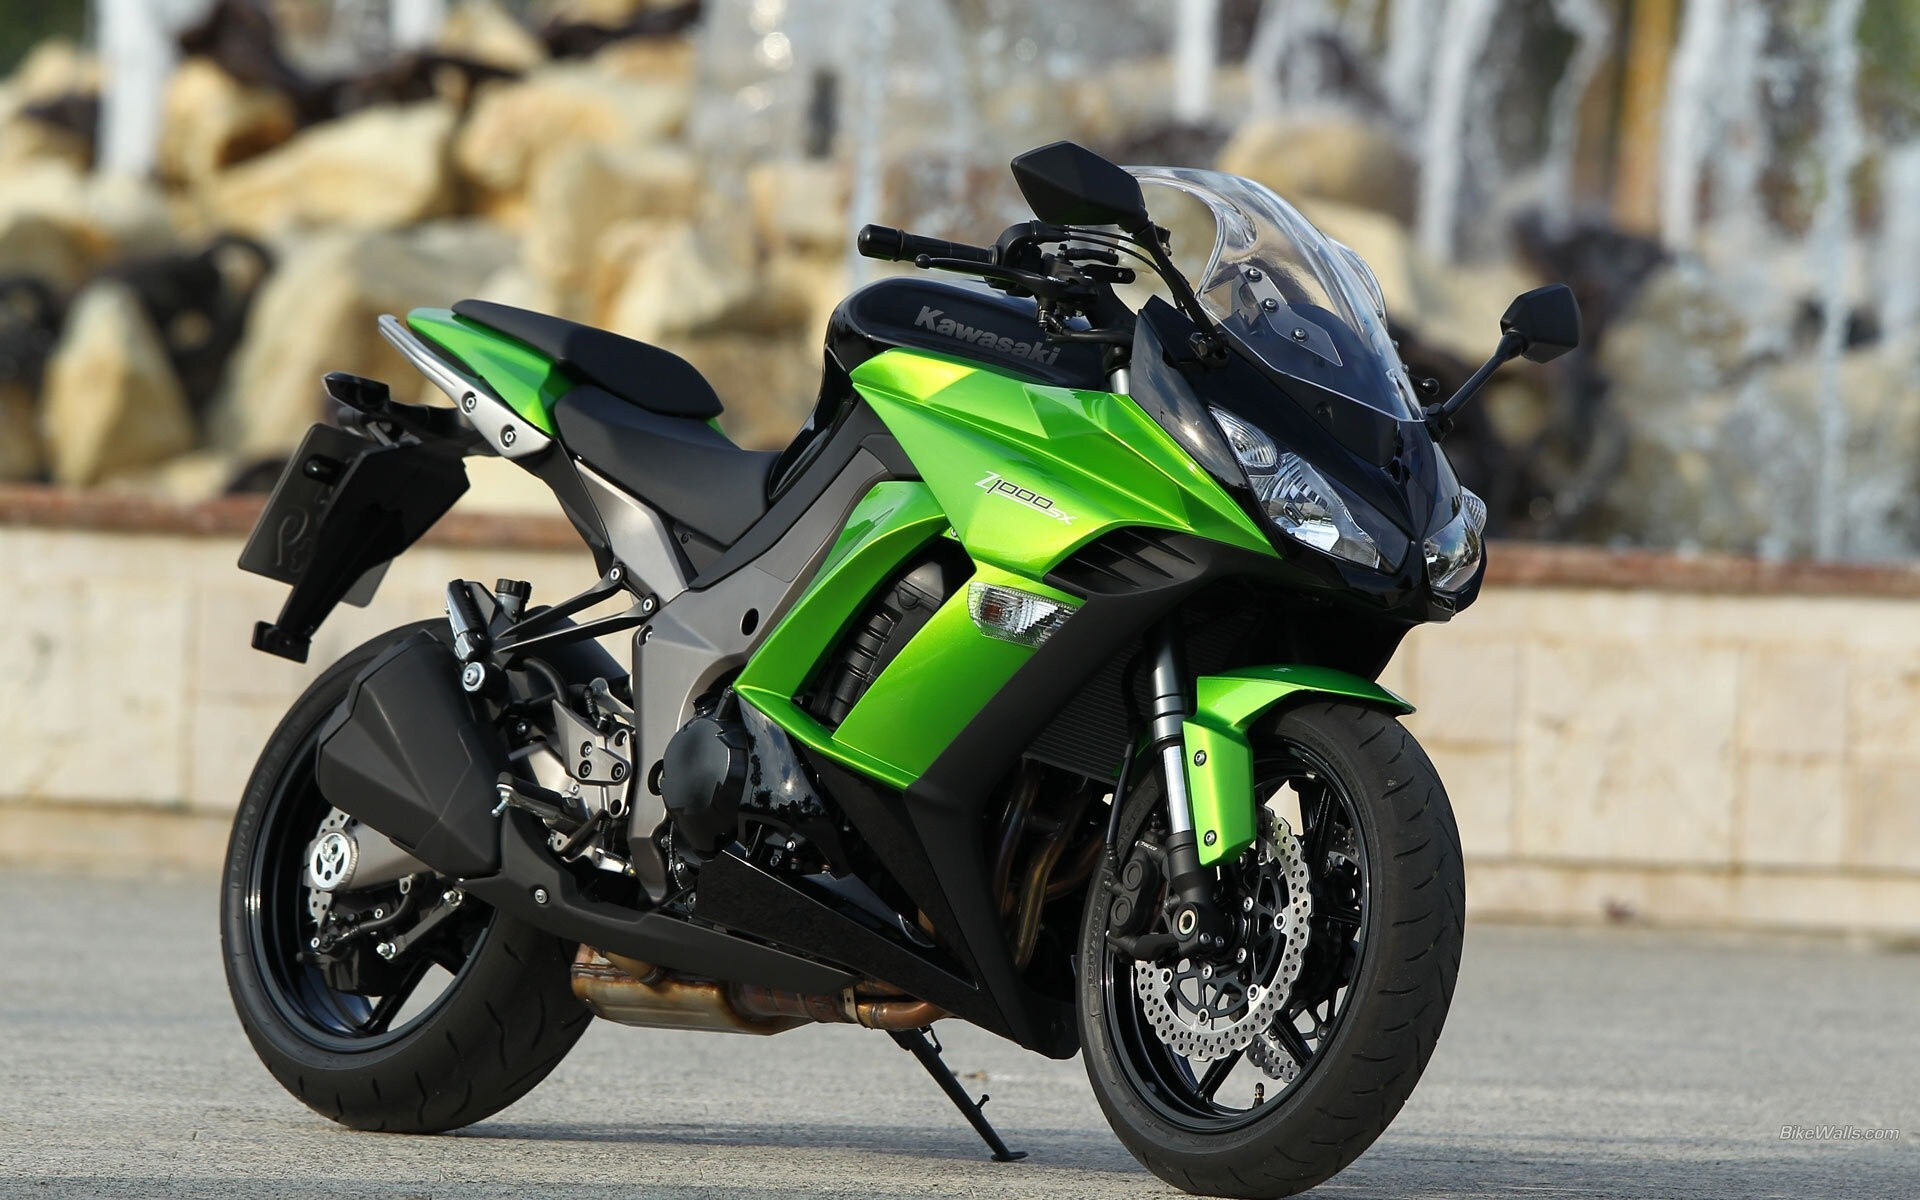 kawasaki z1000sx sport bike wallpaper | hd wallpapers